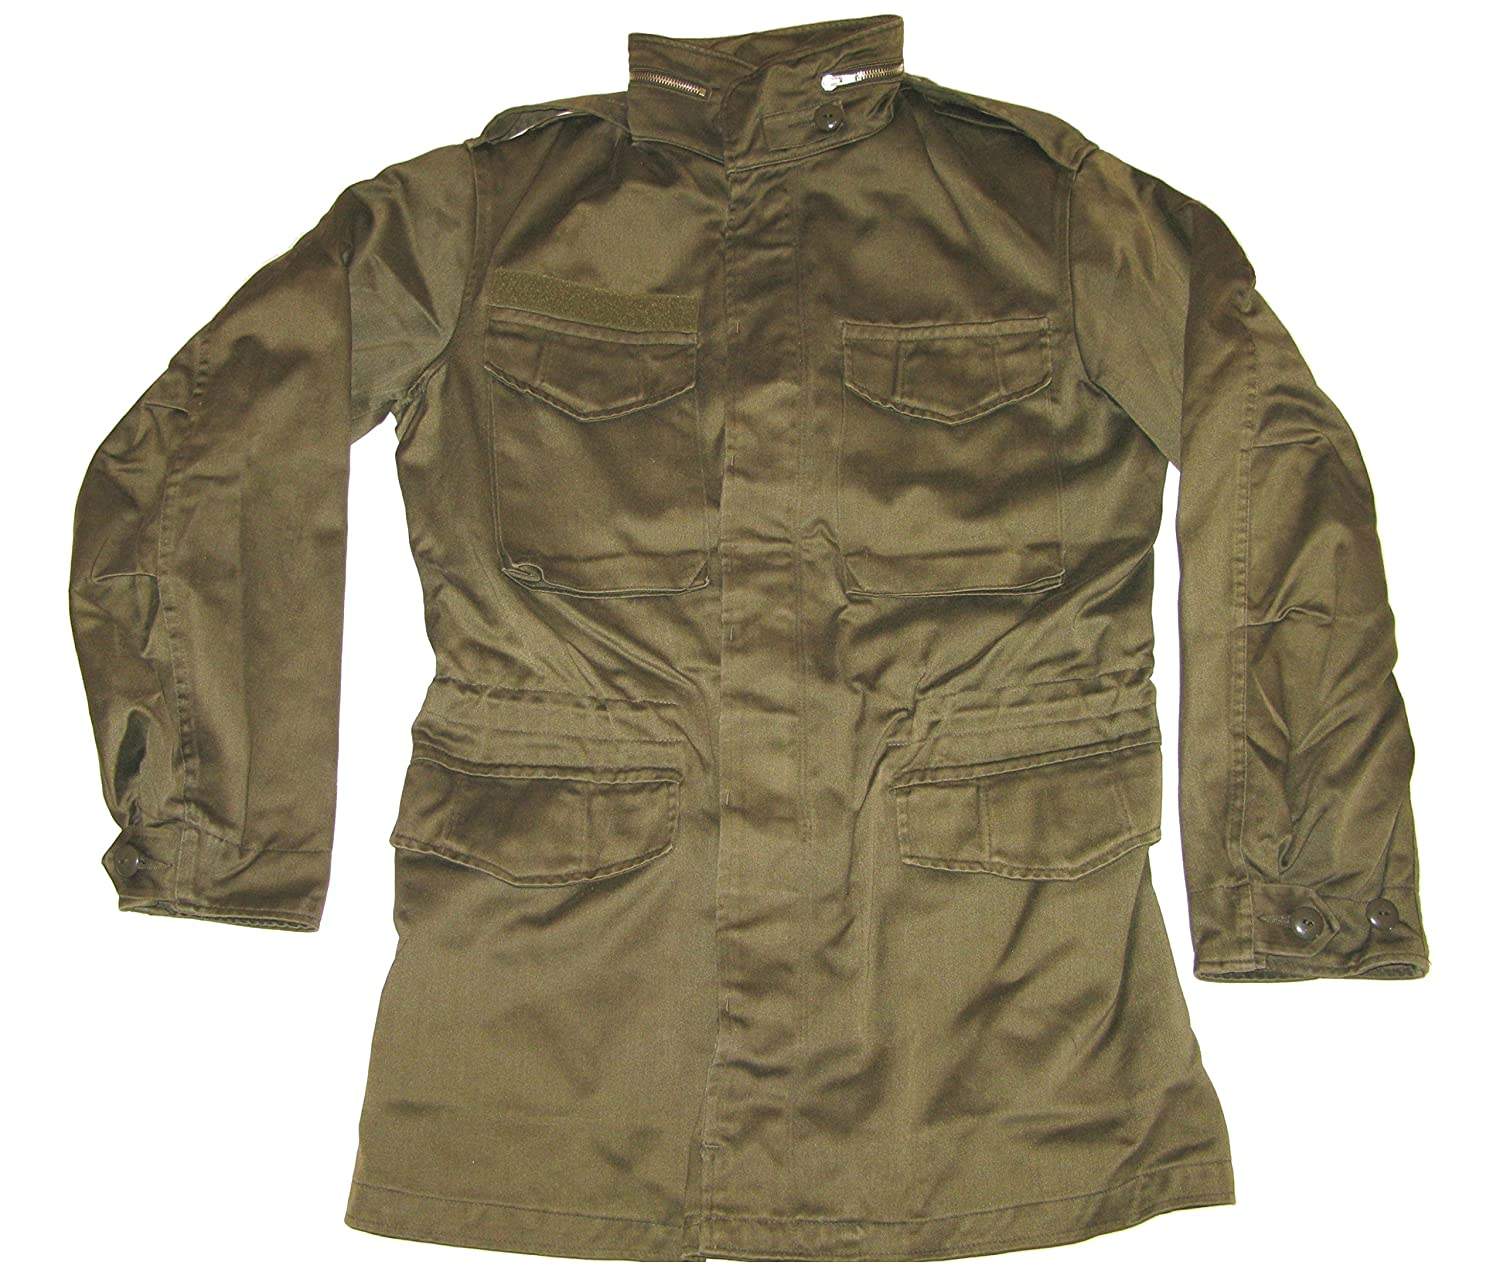 208d494813d VIZ-UK WEAR Austrian Army M65 Olive Drab Field Jacket Grade 1 (34 36)   Amazon.co.uk  Clothing